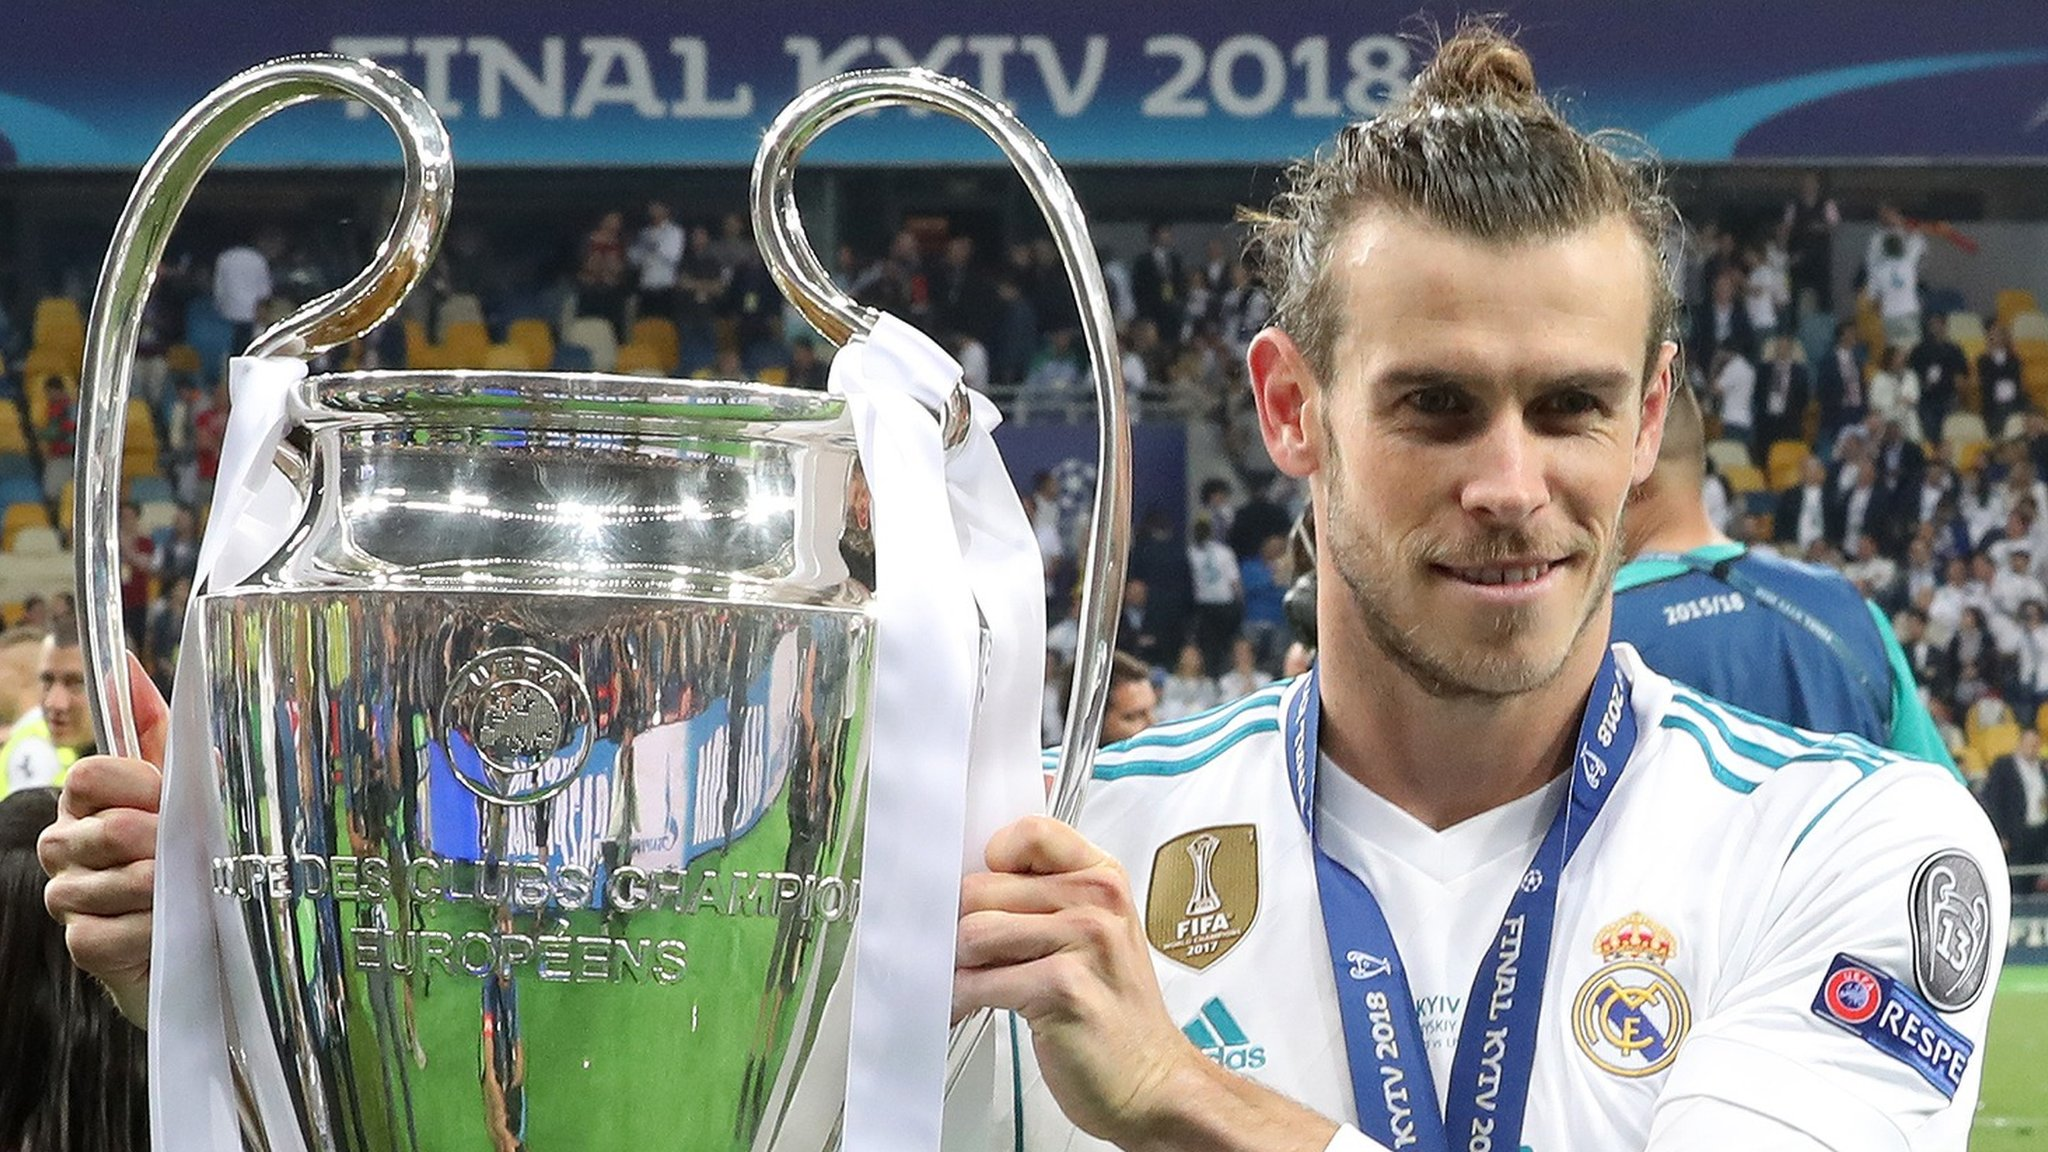 Champions League and Europa League: Huge increase in prize money next season